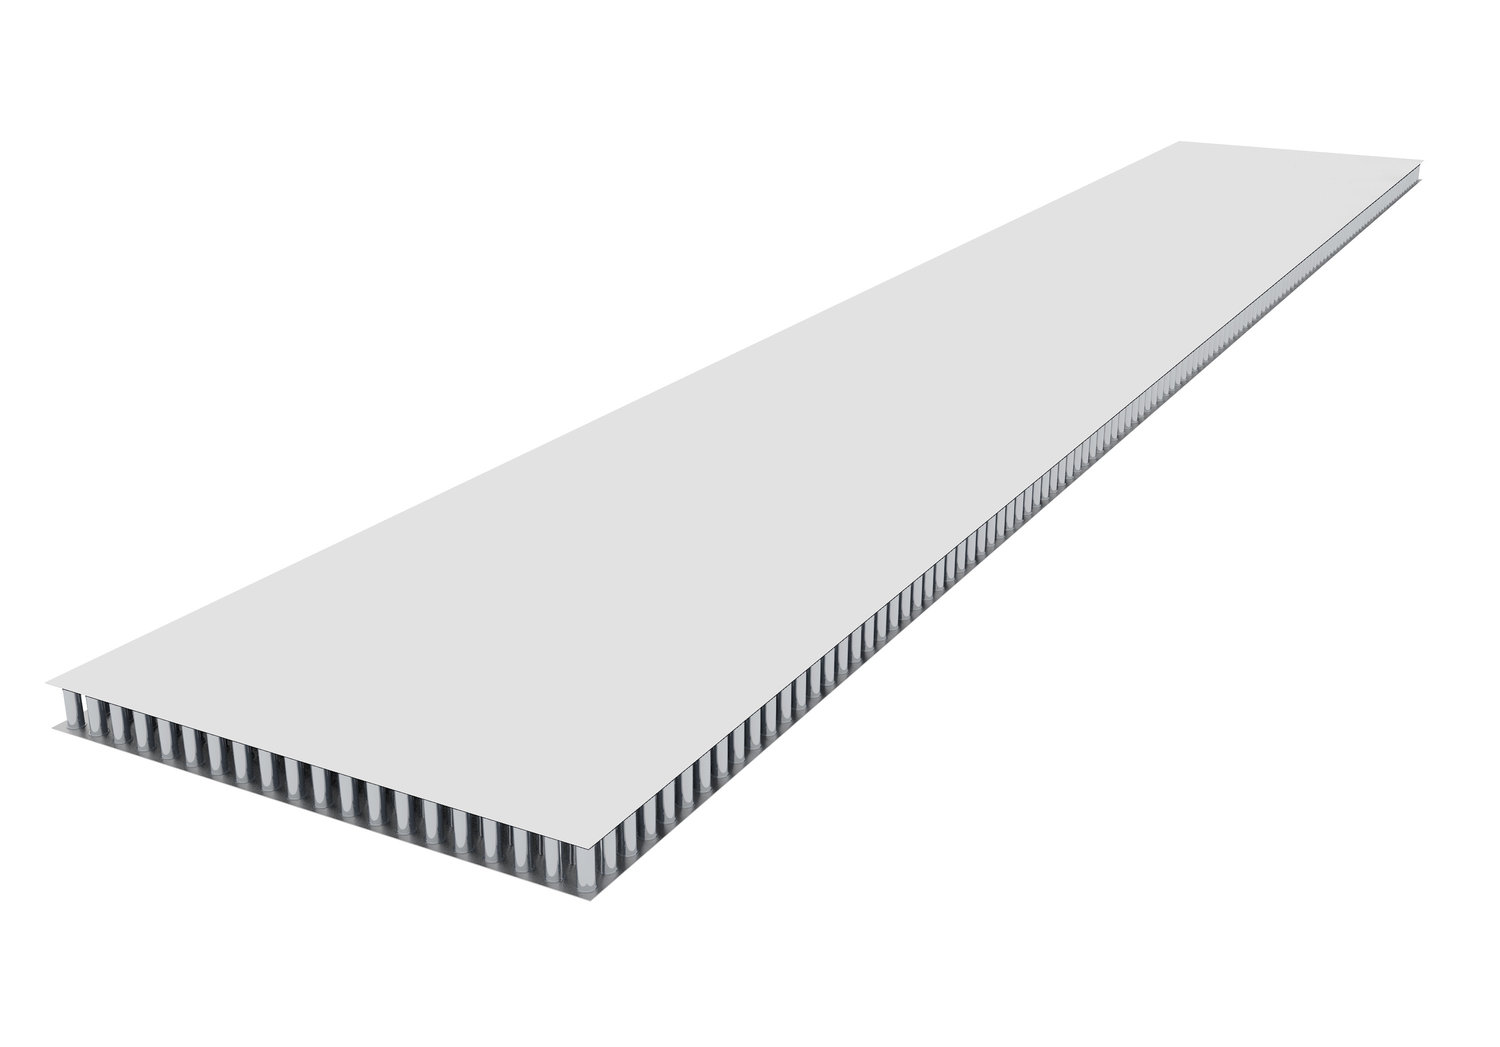 THE DESIGN. - BSBcore/CTS slab is a kind of high strength structural material consisting of thin-wall core tubes sandwiched between two steel plates, which are melded together through hot-air copper brazing. Standard slab is 12m long, 2m wide and 0.15m thick and can be directly used as floor slab, column, main girder, secondary girder or load-bearing wall etc. It can also be cut according to the requirements of architectural design.